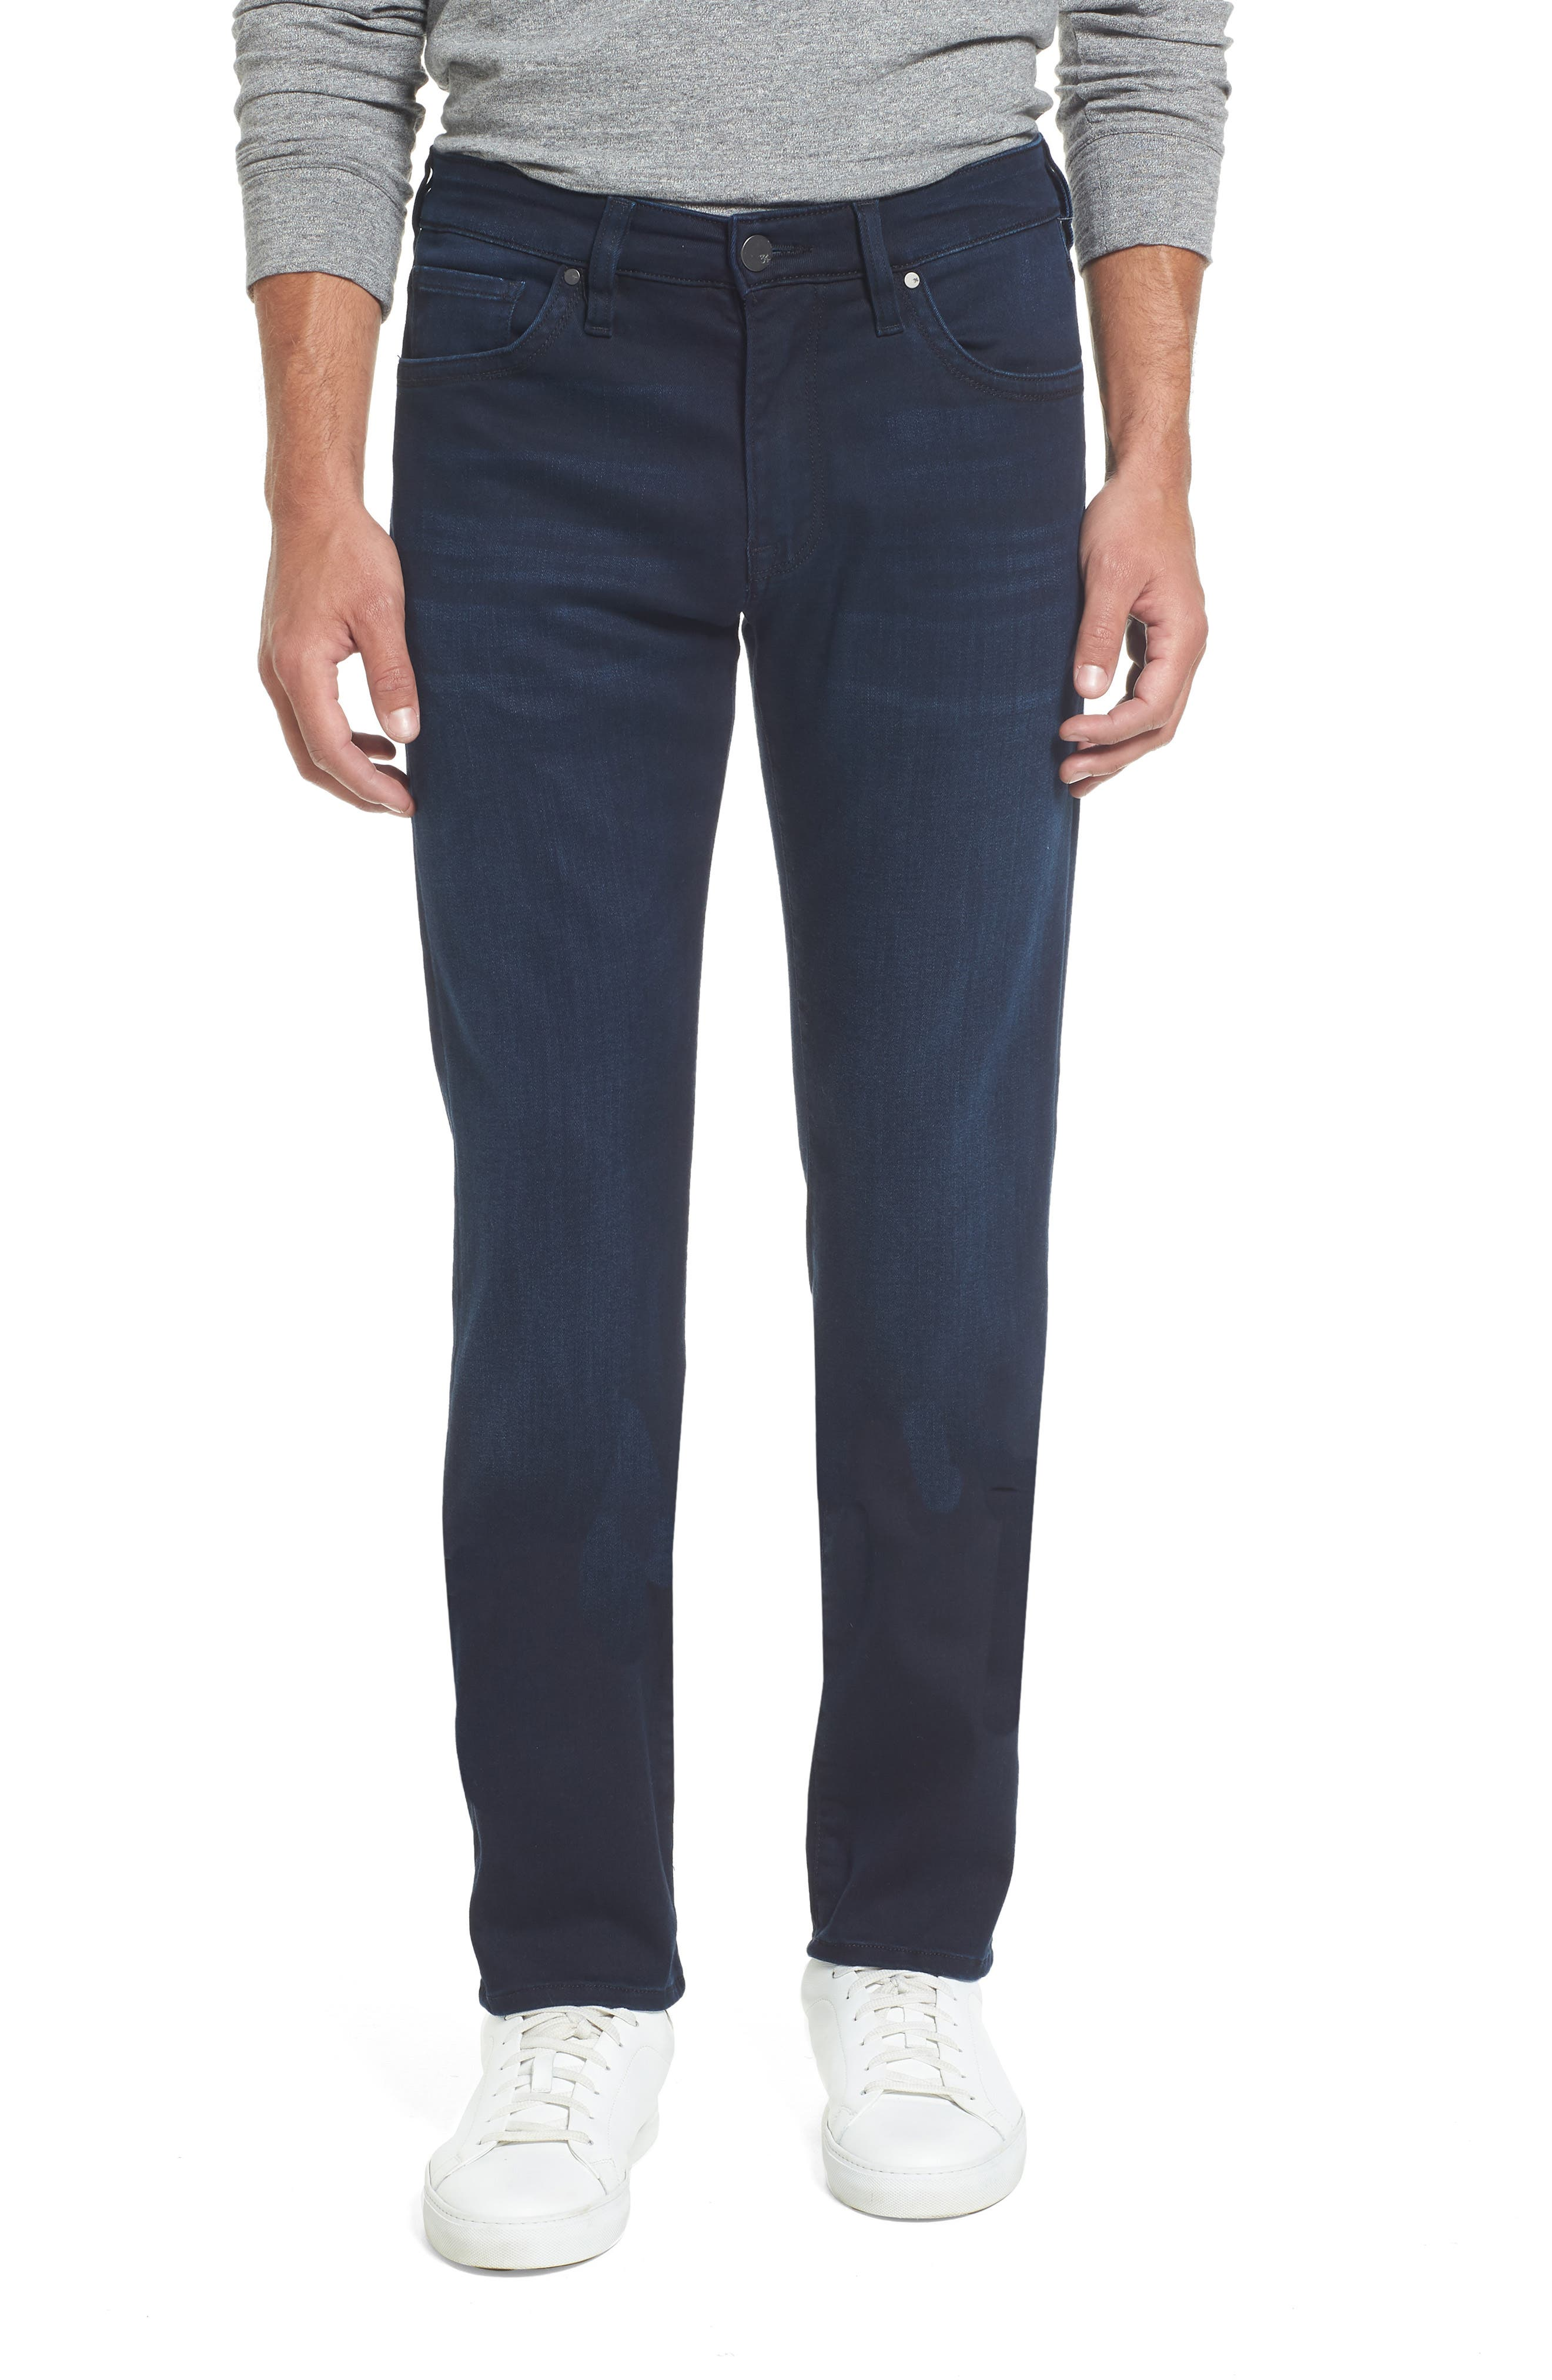 Courage Straight Fit Jeans,                         Main,                         color, Ink Rome